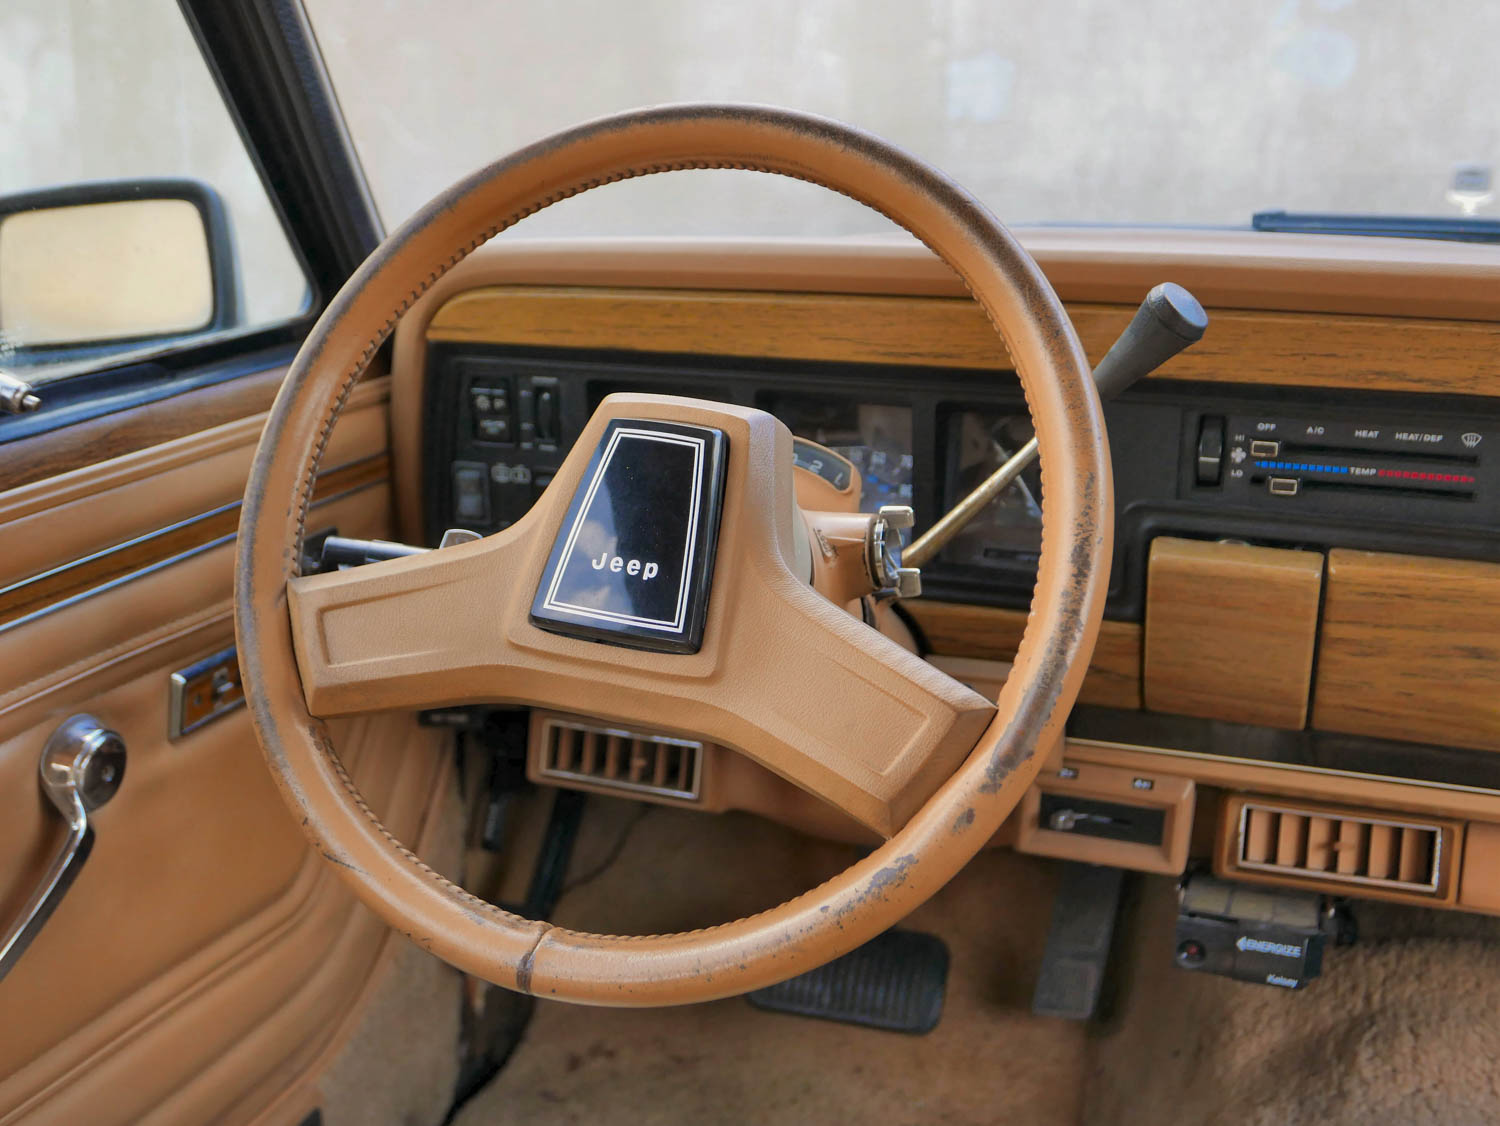 1987 Jeep Grand Wagoneer steering wheel